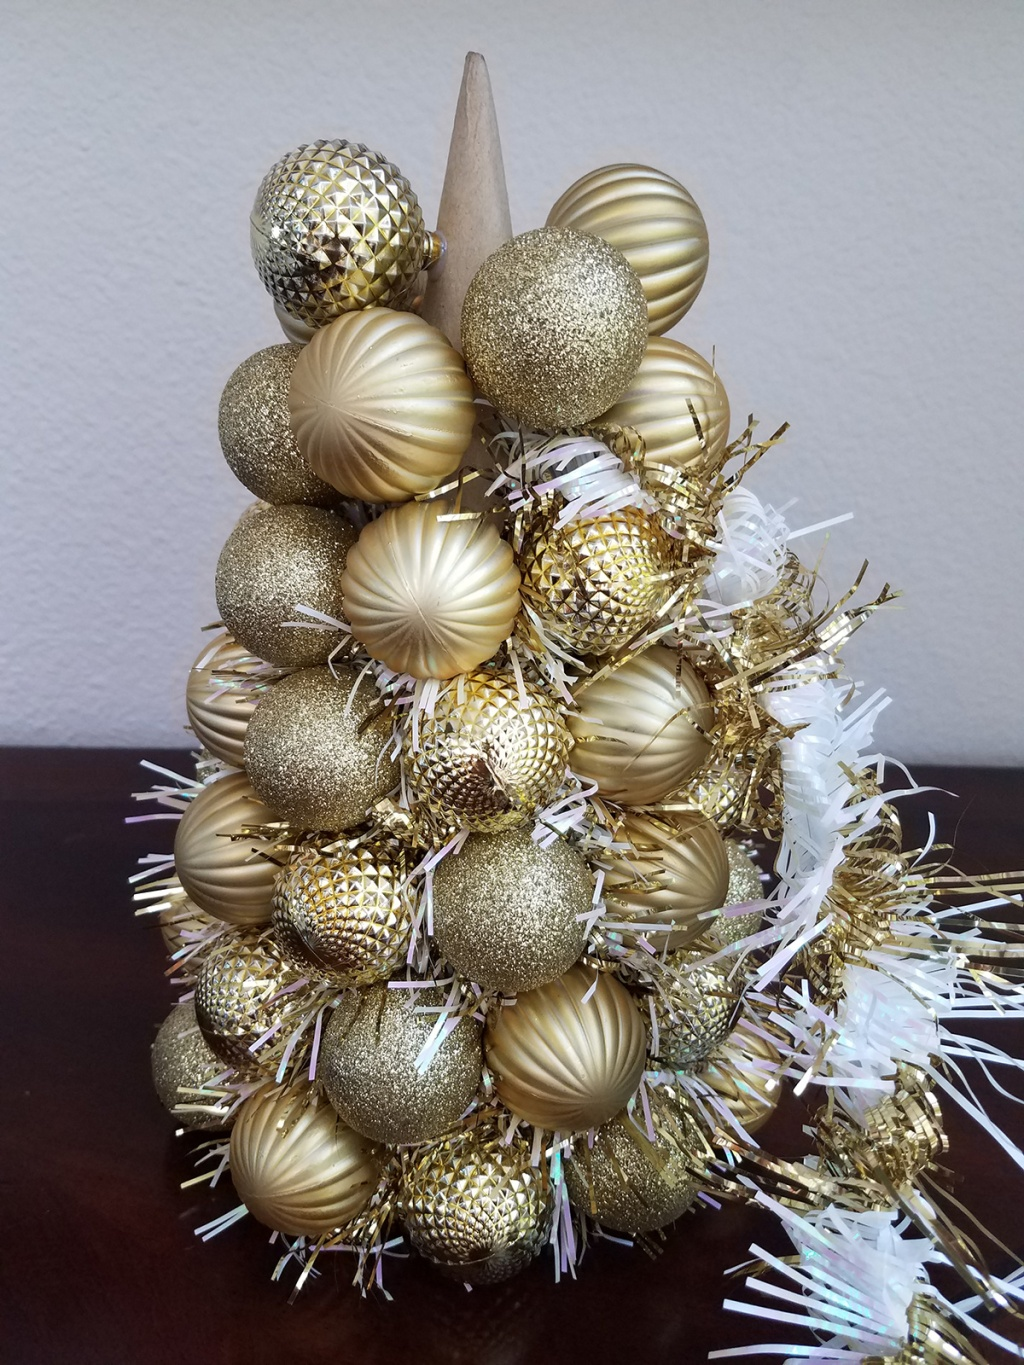 Adding white and gold garland to gold ornament centerpiece